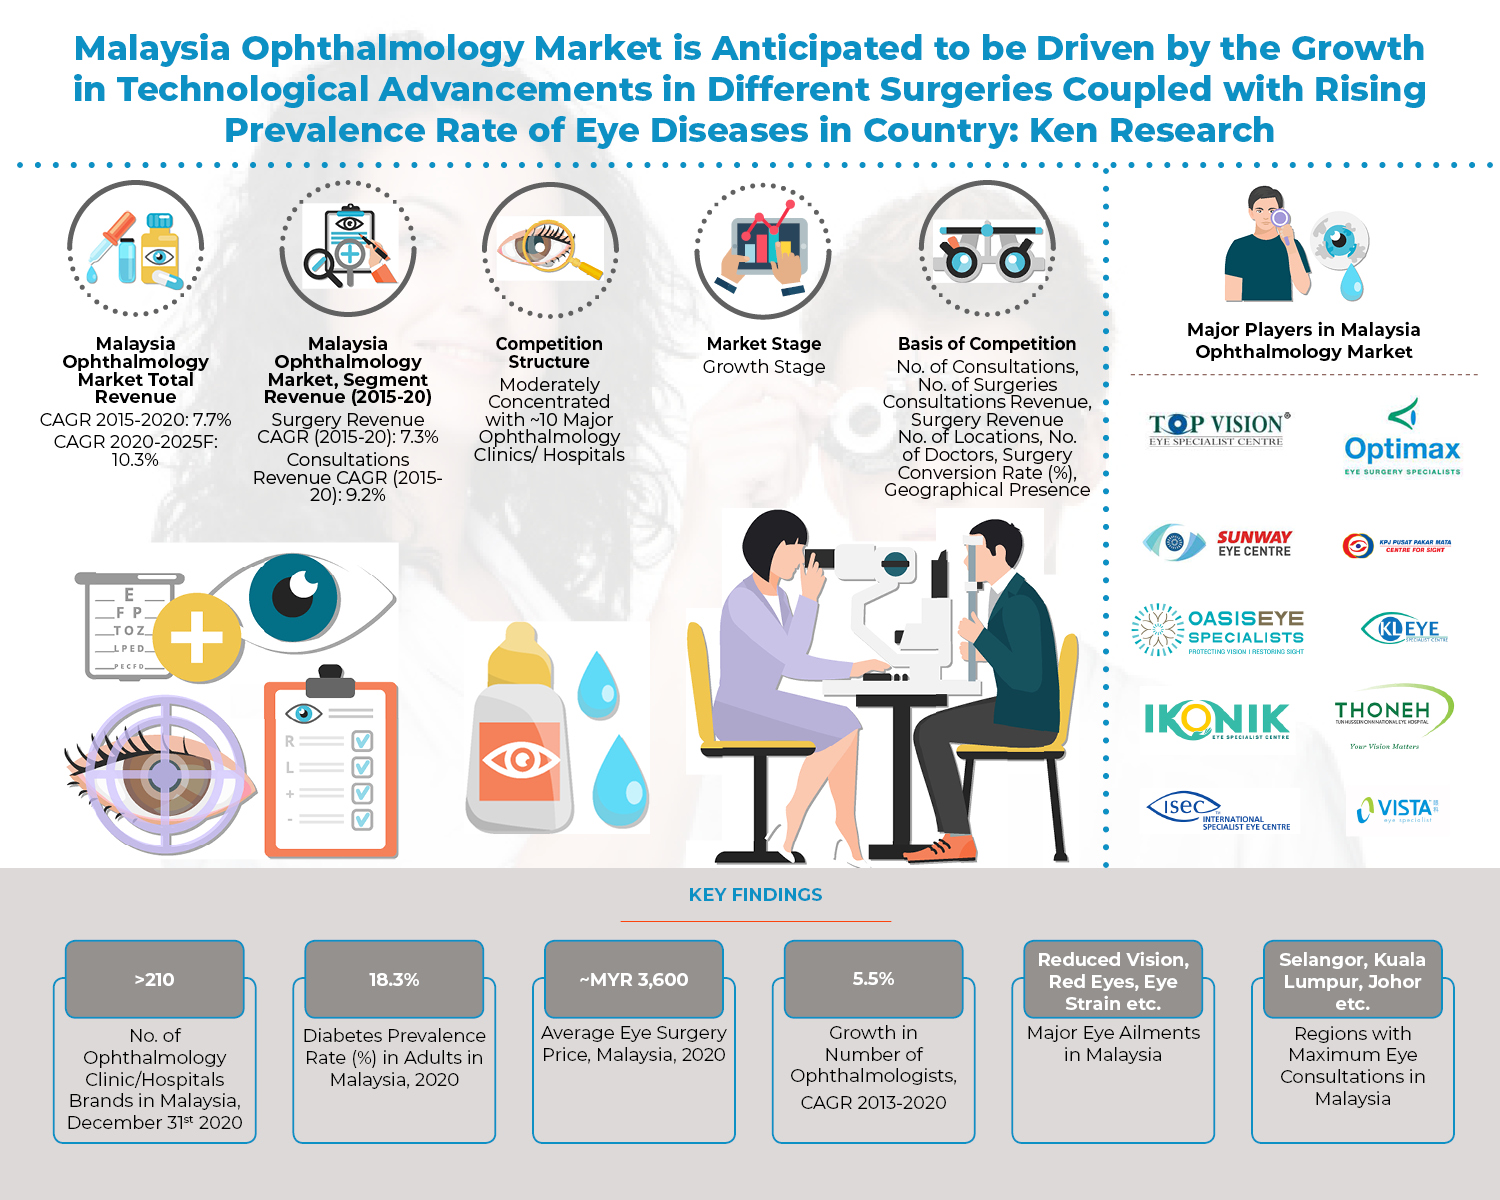 Growing Medical Tourism Coupled with Increasing Diabetic Population in the Country is anticipated to drive the Malaysia Ophthalmology Market: Ken Research